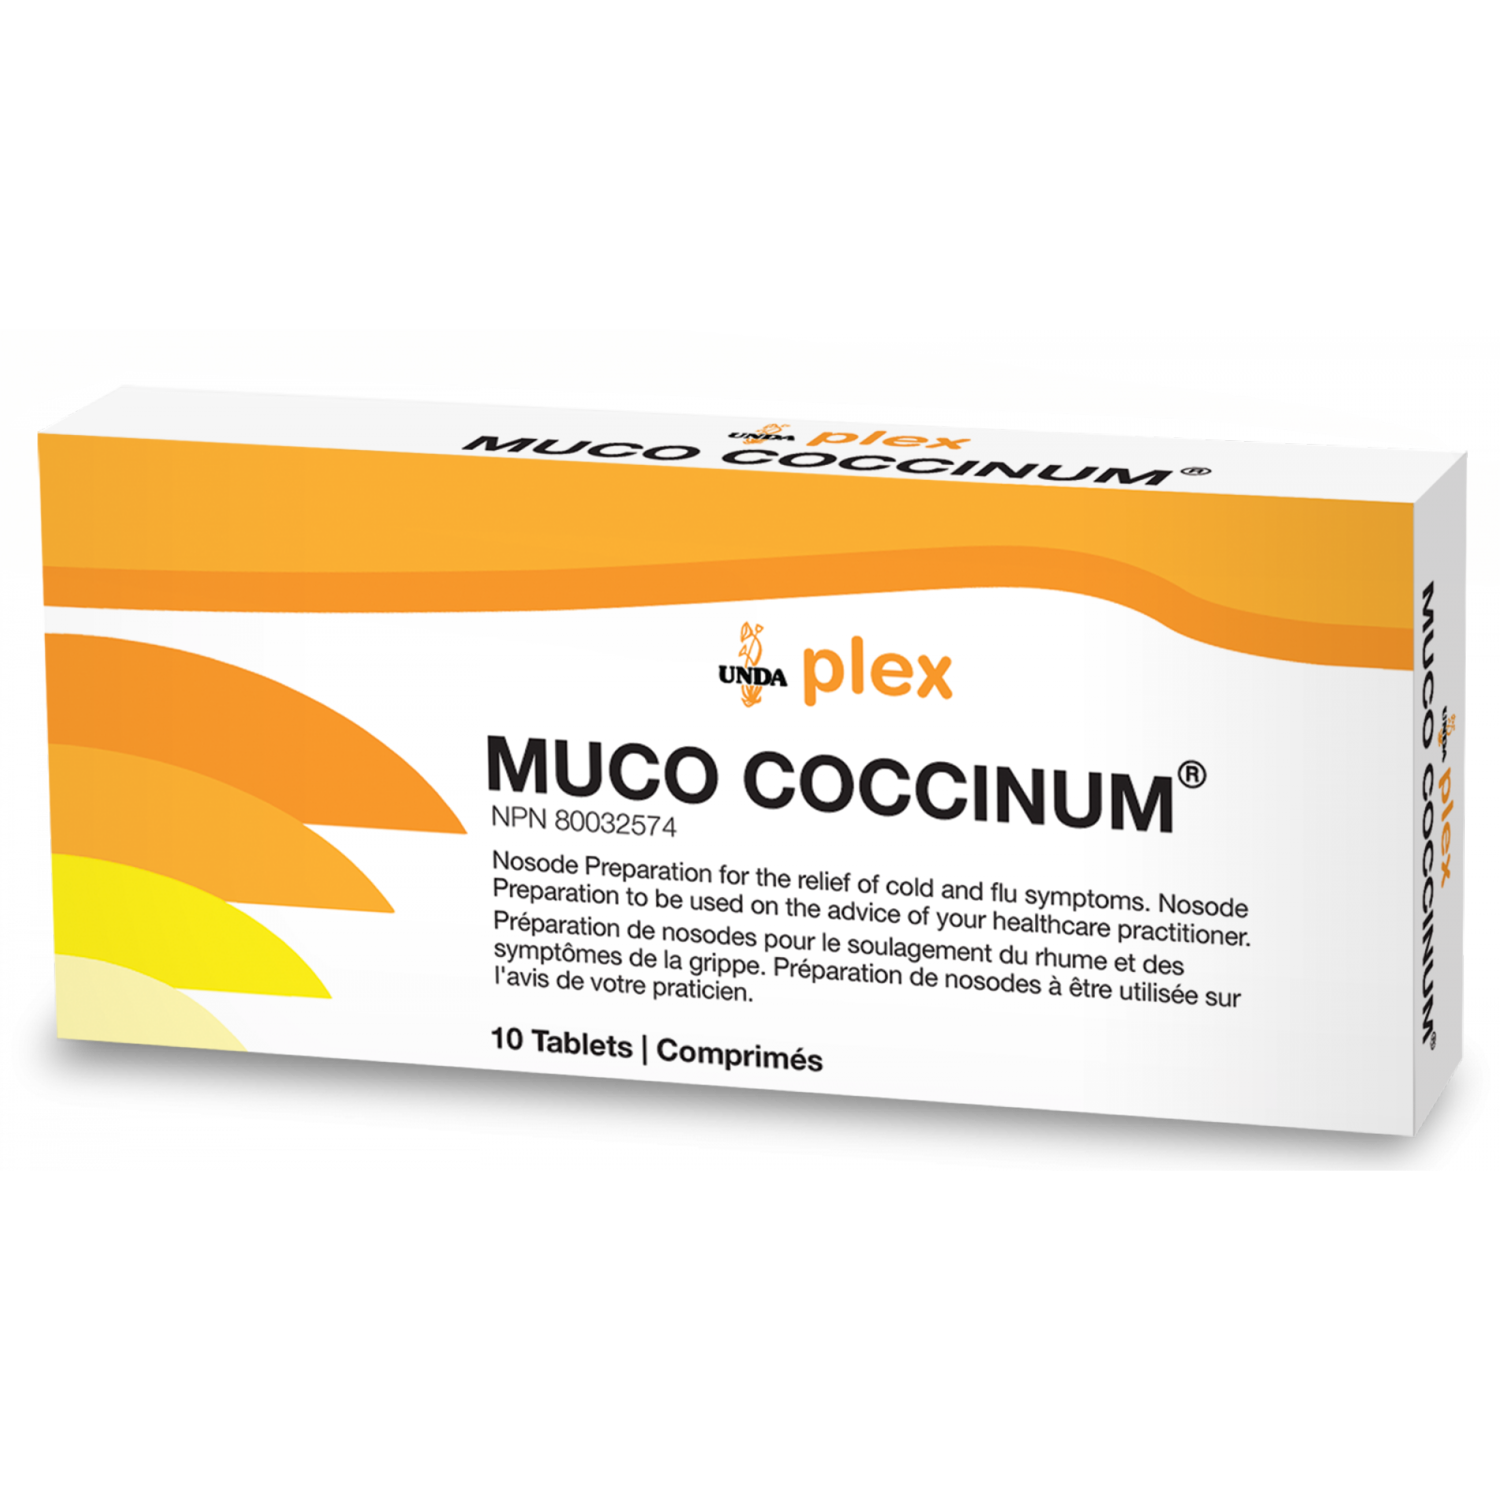 Muco Coccinum - Flu & Viral Prevention by Unda